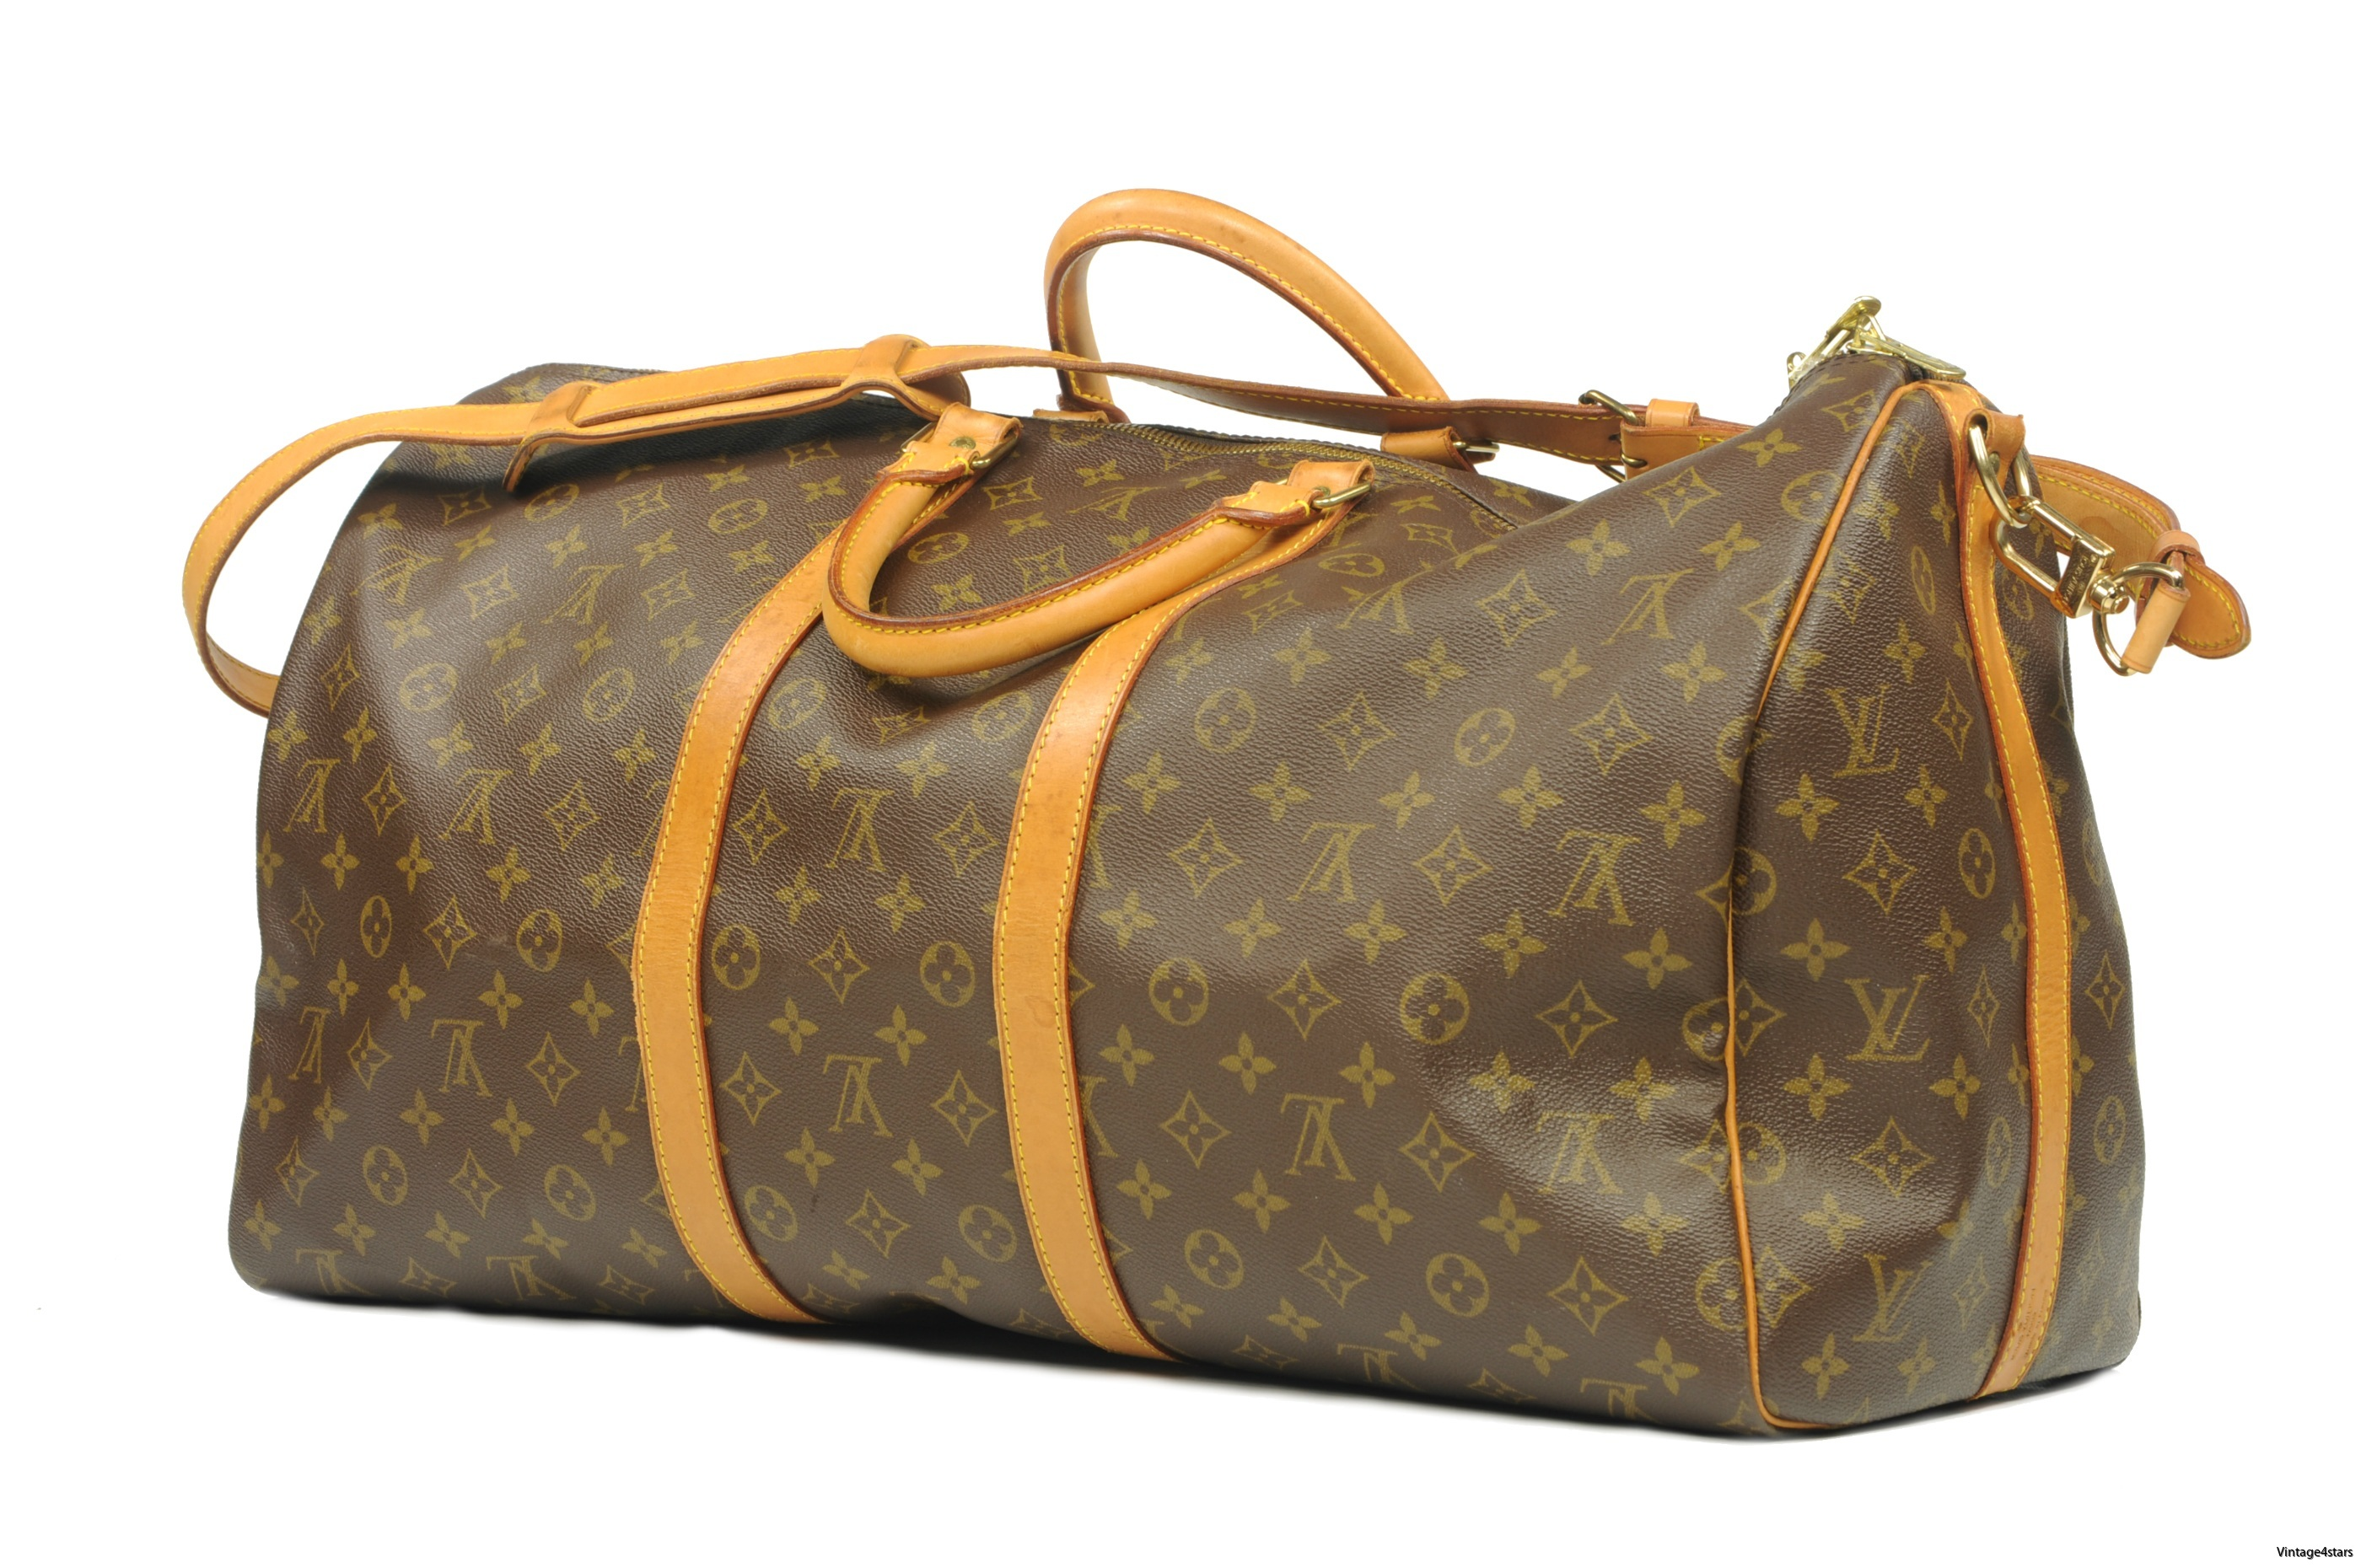 Louis Vuitton Keepall 55 Monogram 1